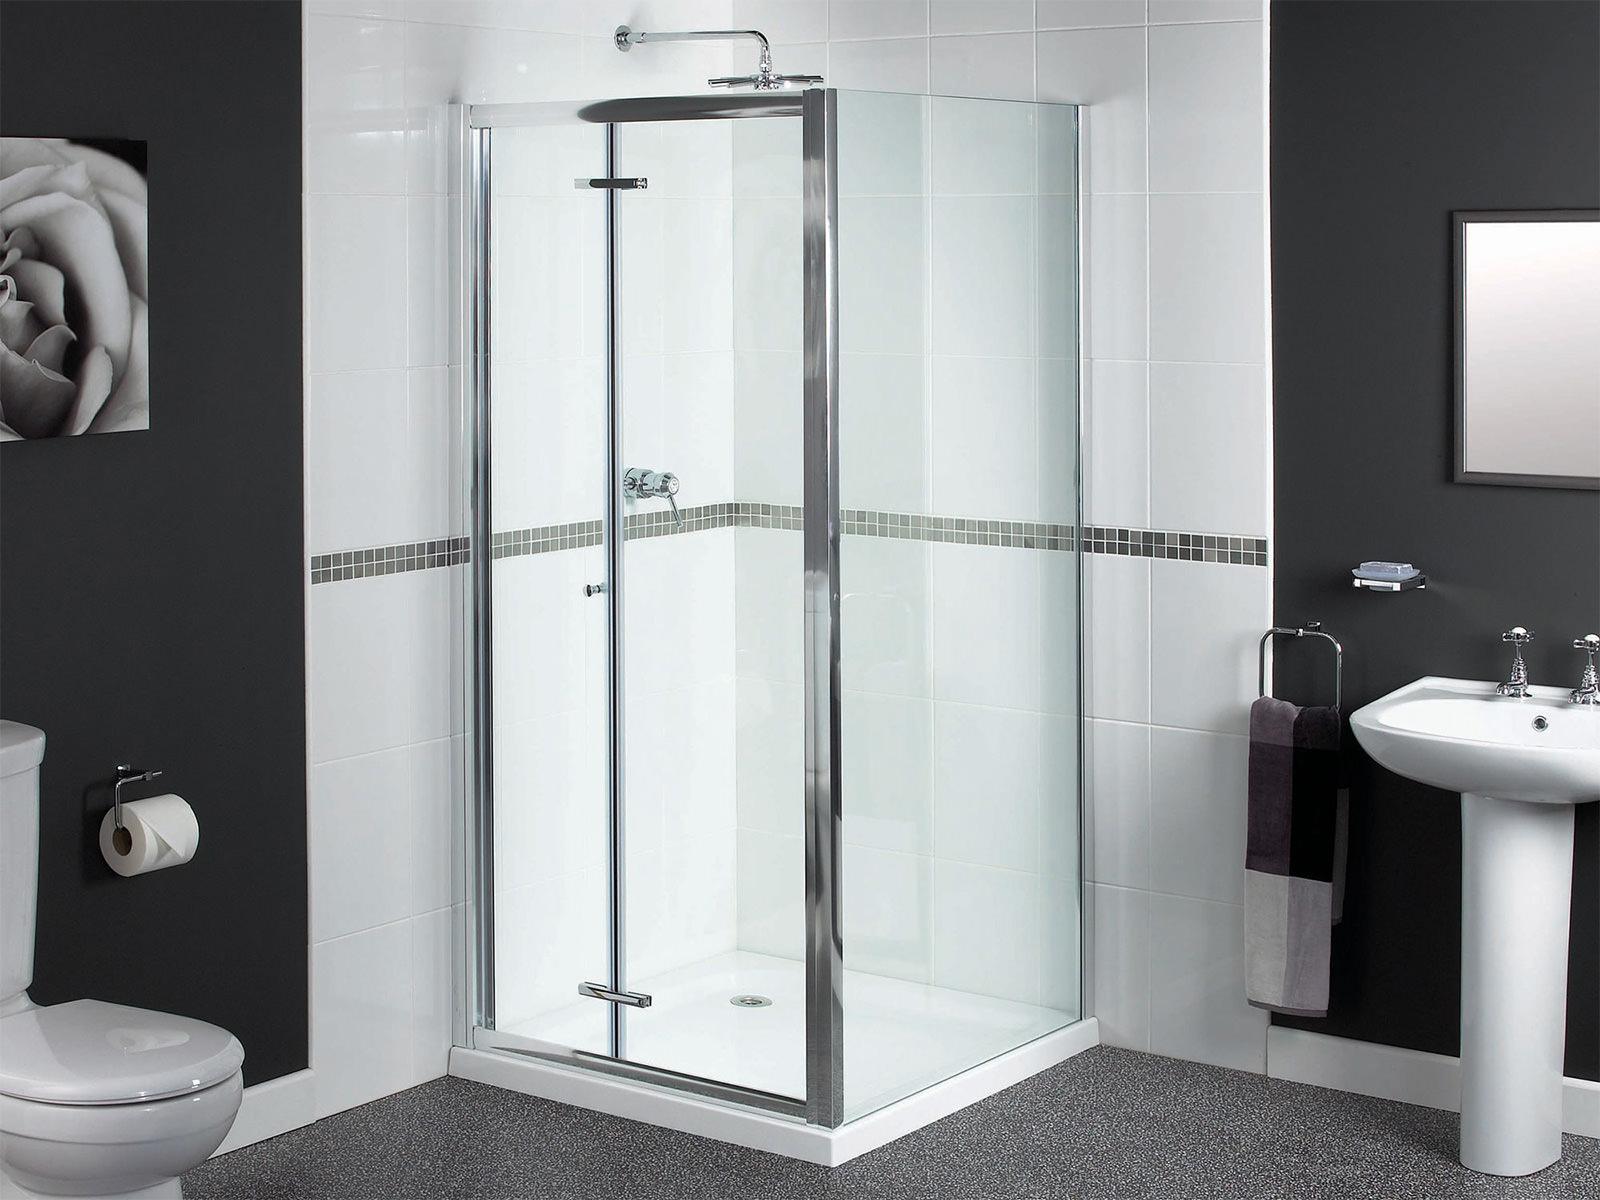 aqualux shine bifold shower door 900mm polished silver fen0900aqu